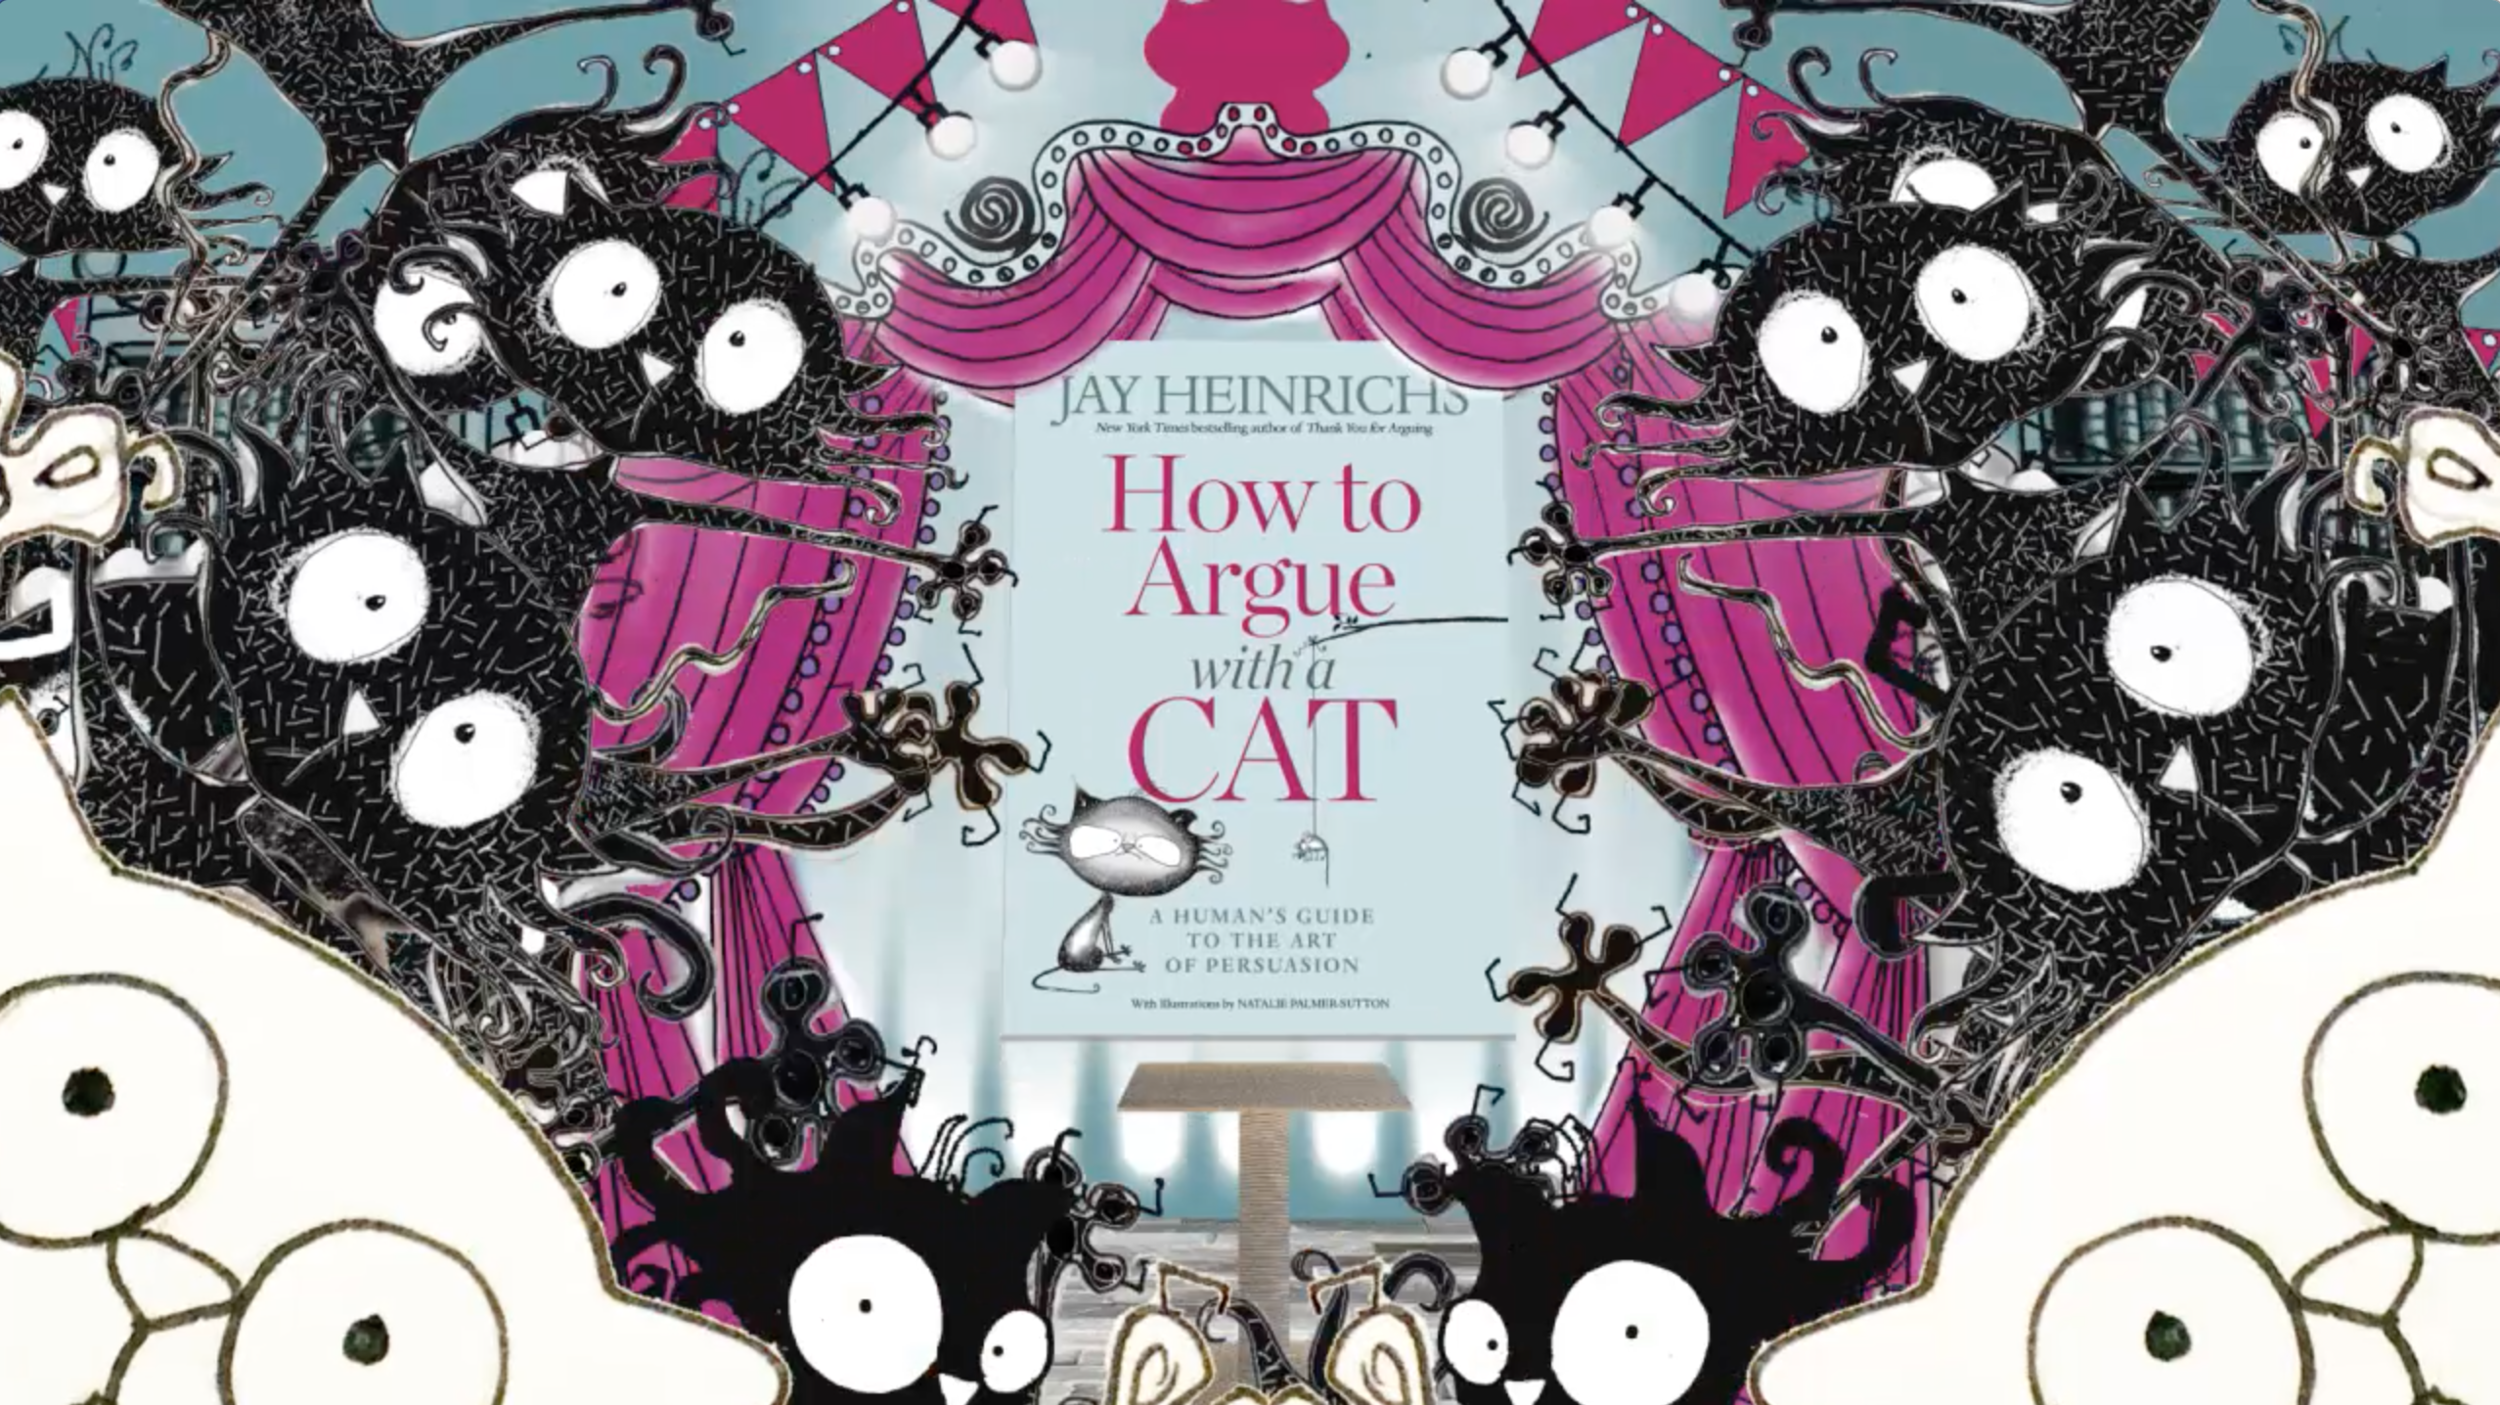 HOW TO ARGUE WITH A CAT | THE BOOK CATS WANT TO BAN | JAY HEINRICHS | NATALIE PALMER-SUTTON ANIMATION 33.png